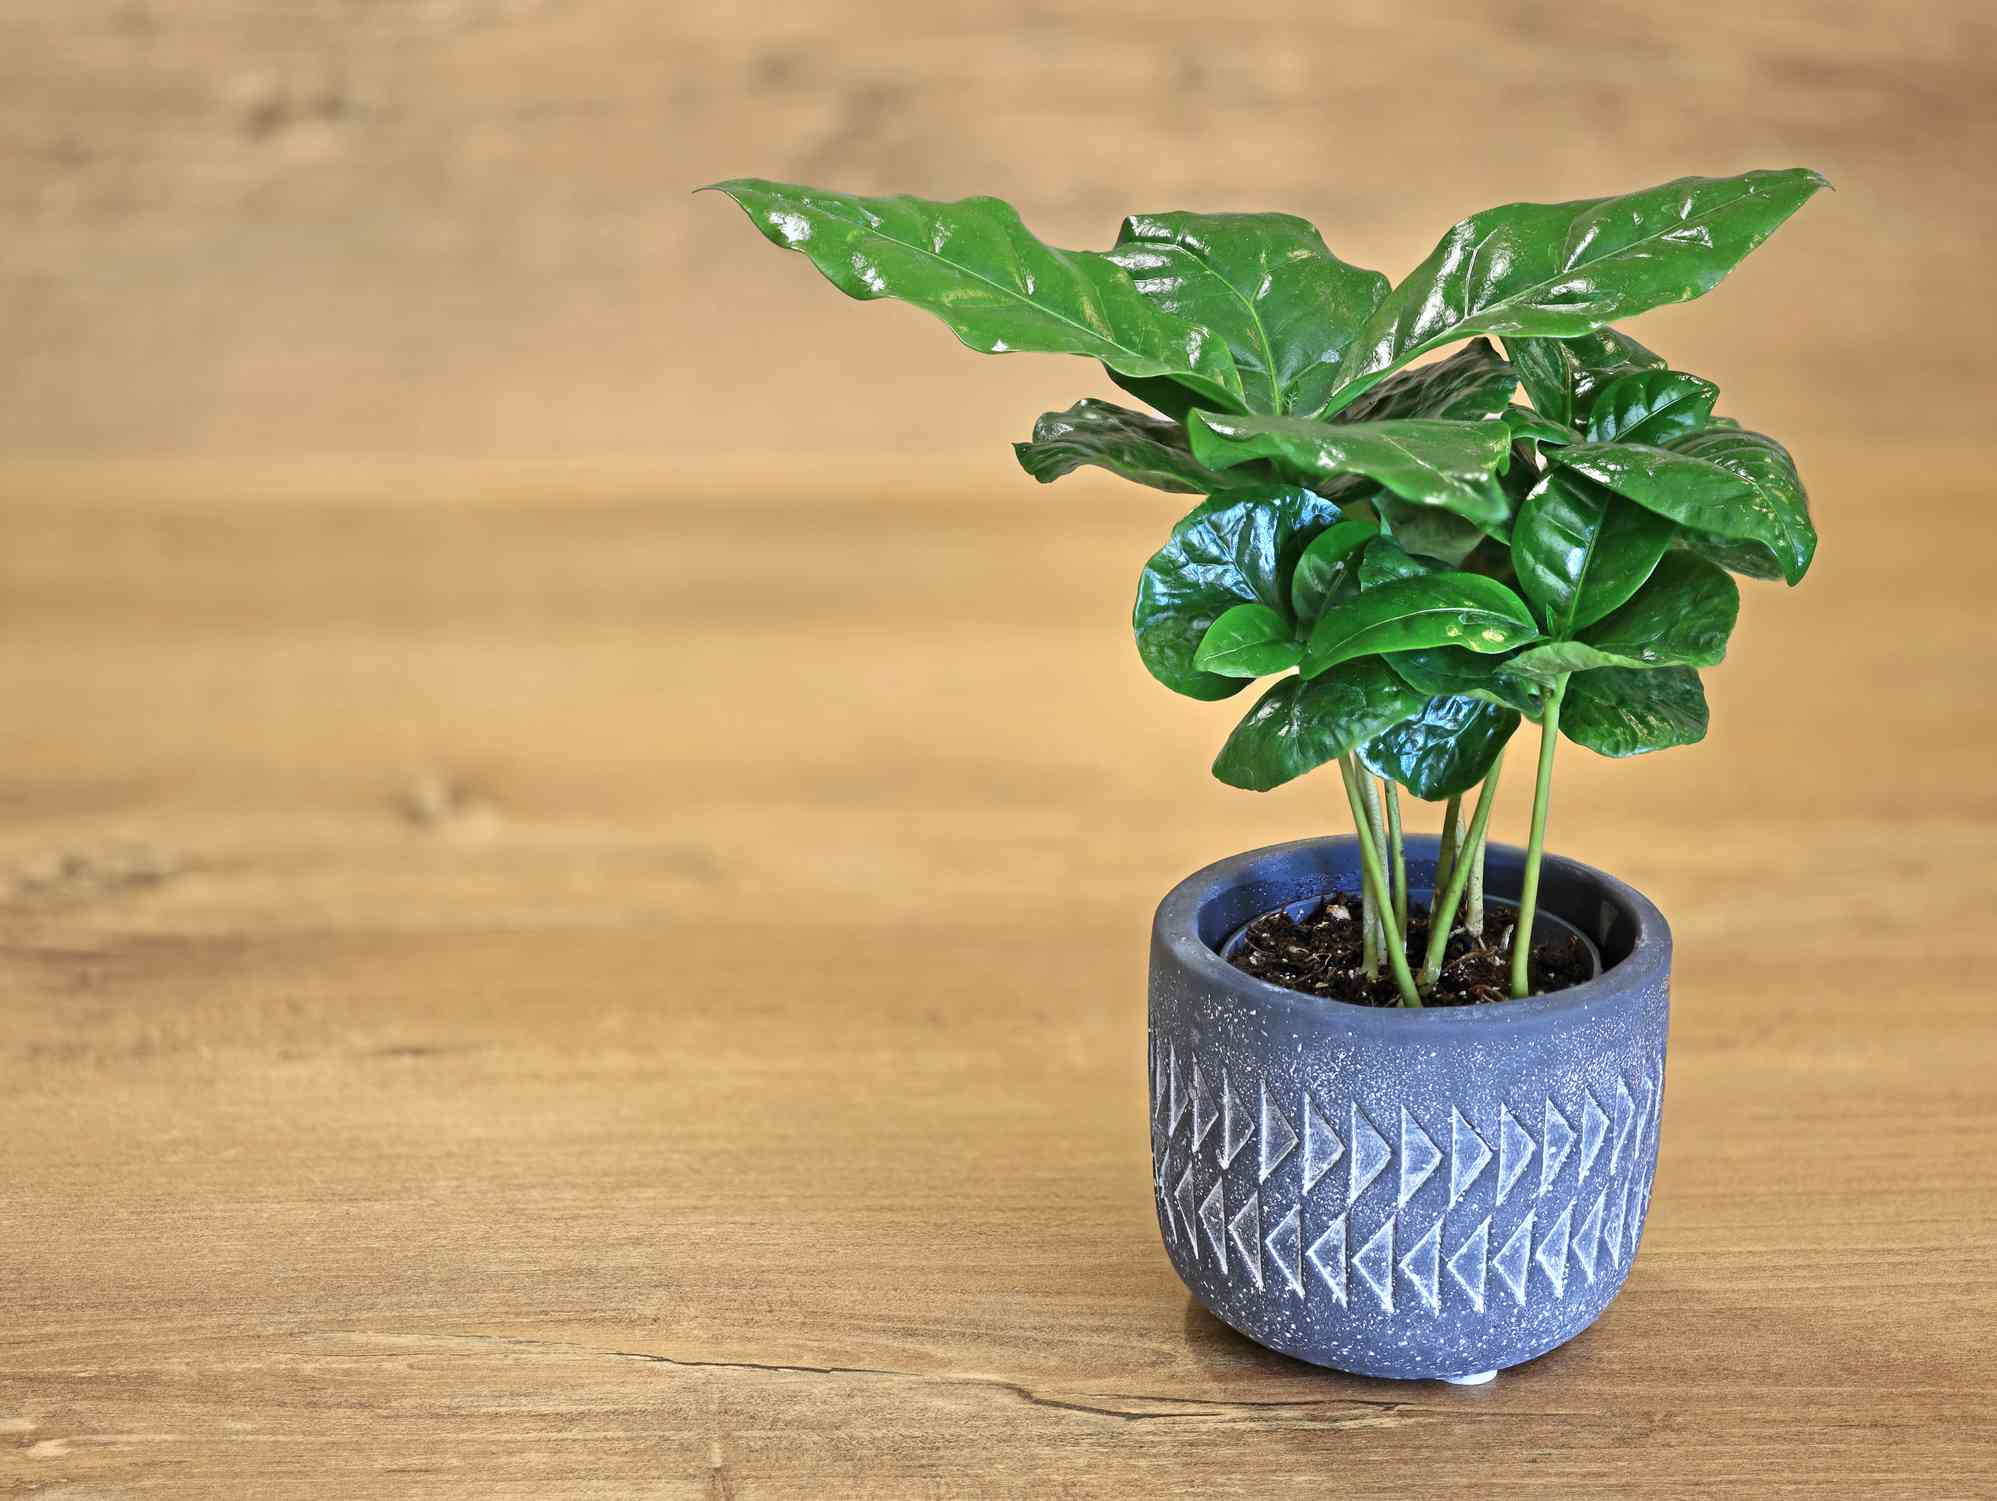 Small coffee plant growing in pot